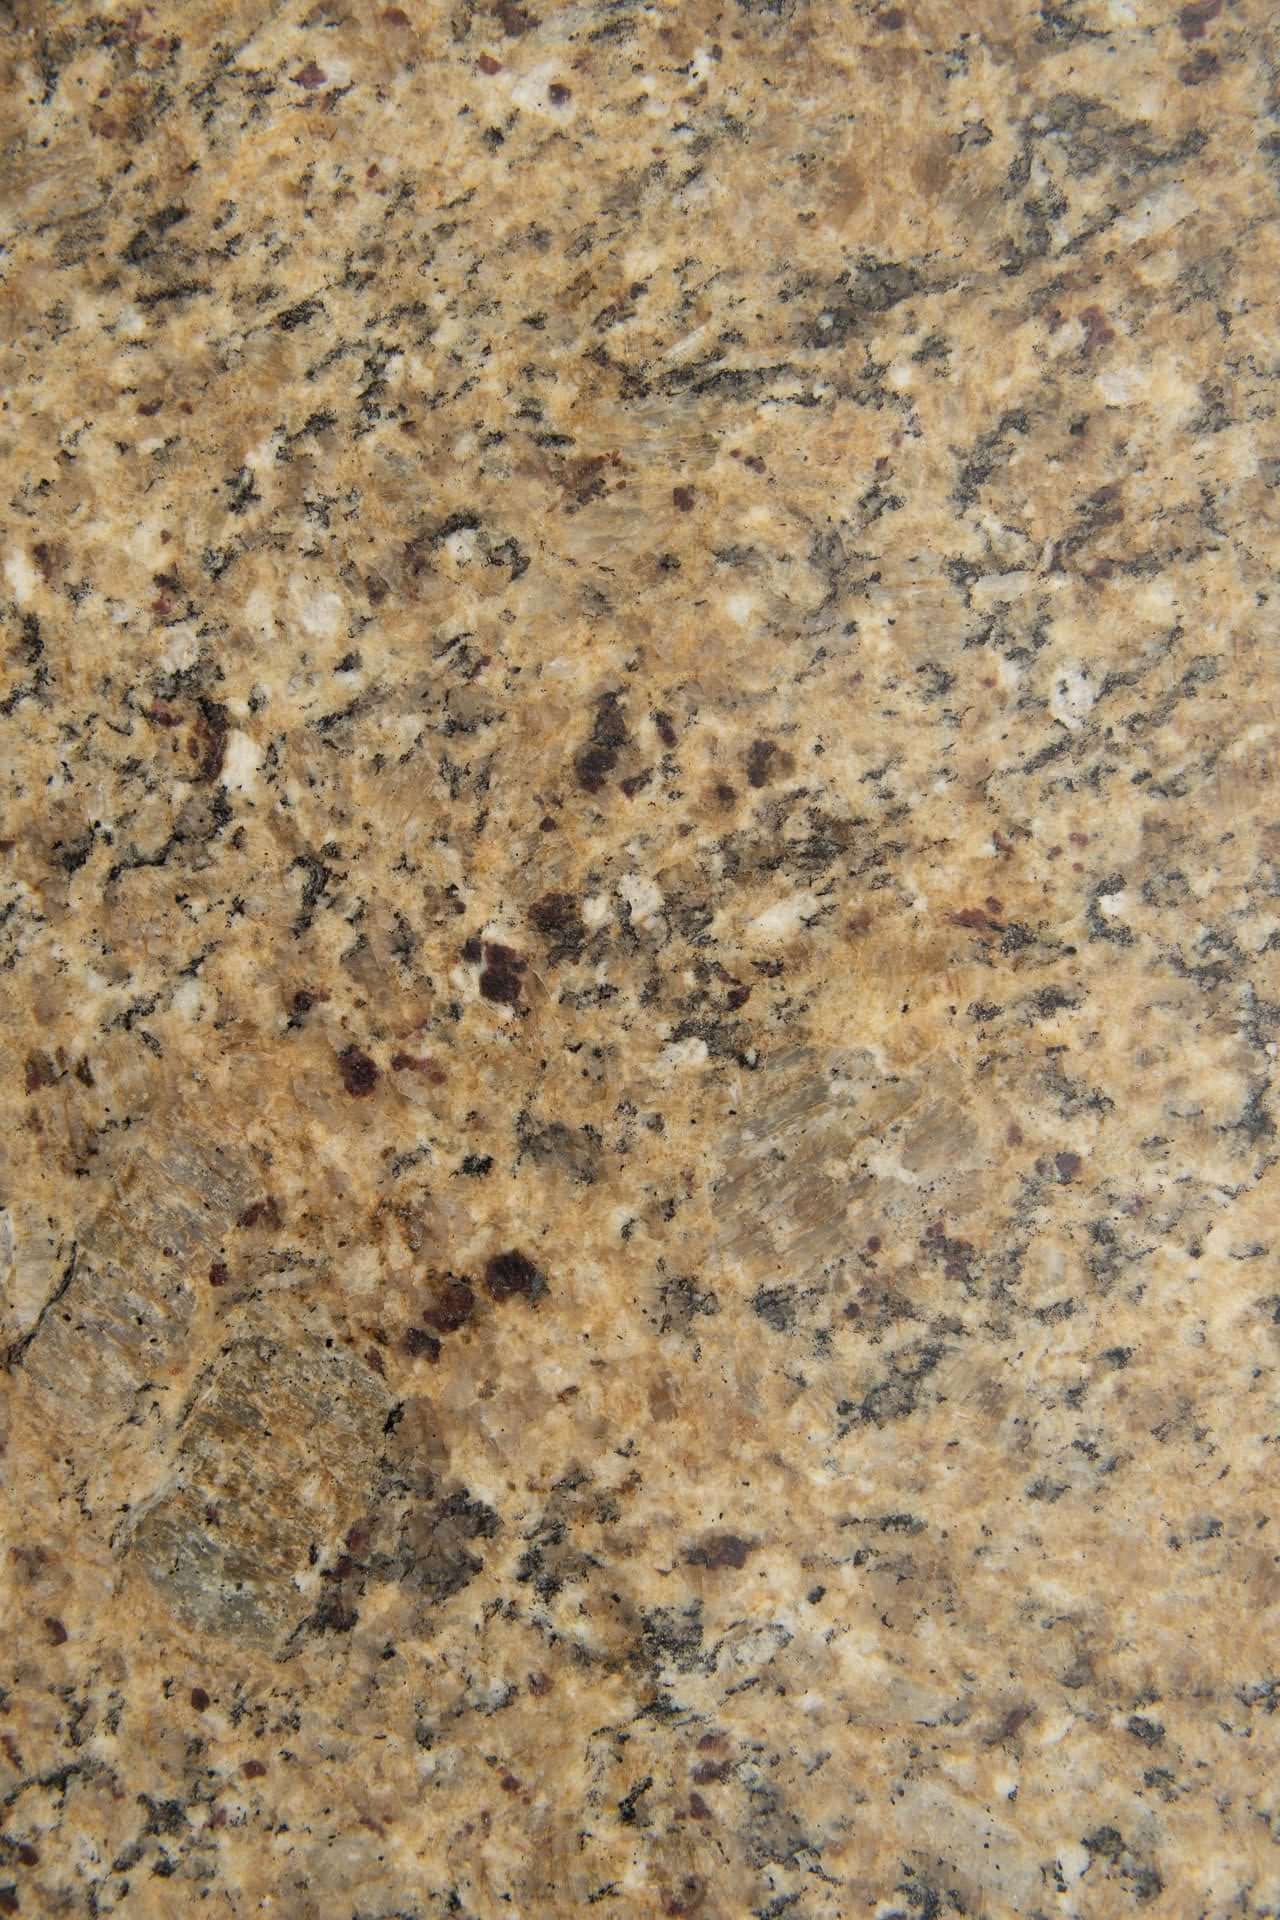 new venetian gold cu countertop - by Magnolia Countertops. A Countertop fabricator of Granite Countertops, Marble Countertops, and Quartz Countertops in Cookeville and Crossville TN.